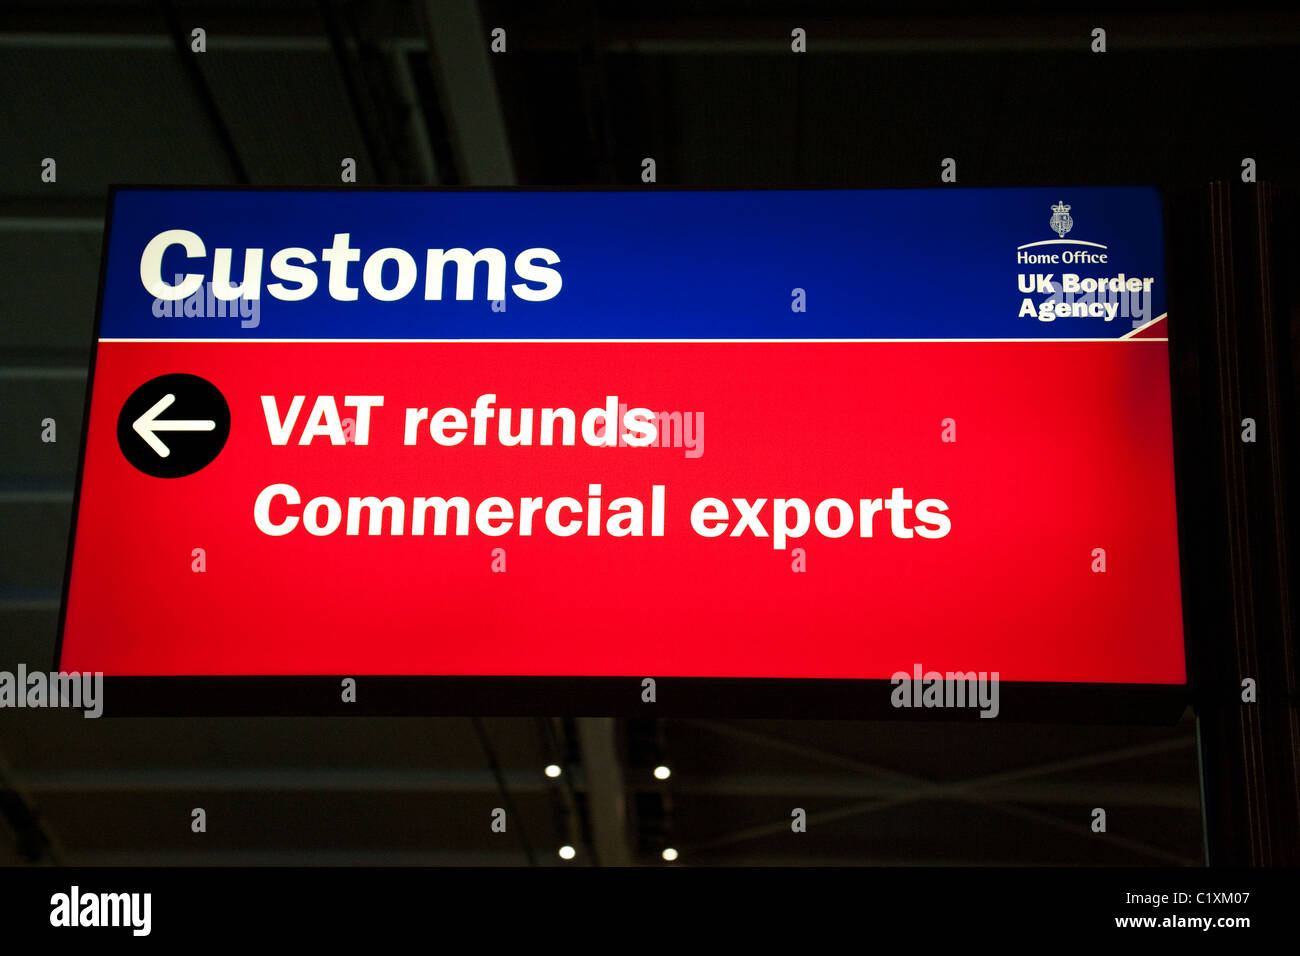 Customs sign, Terminal 5, Heathrow airport, London UK - Stock Image